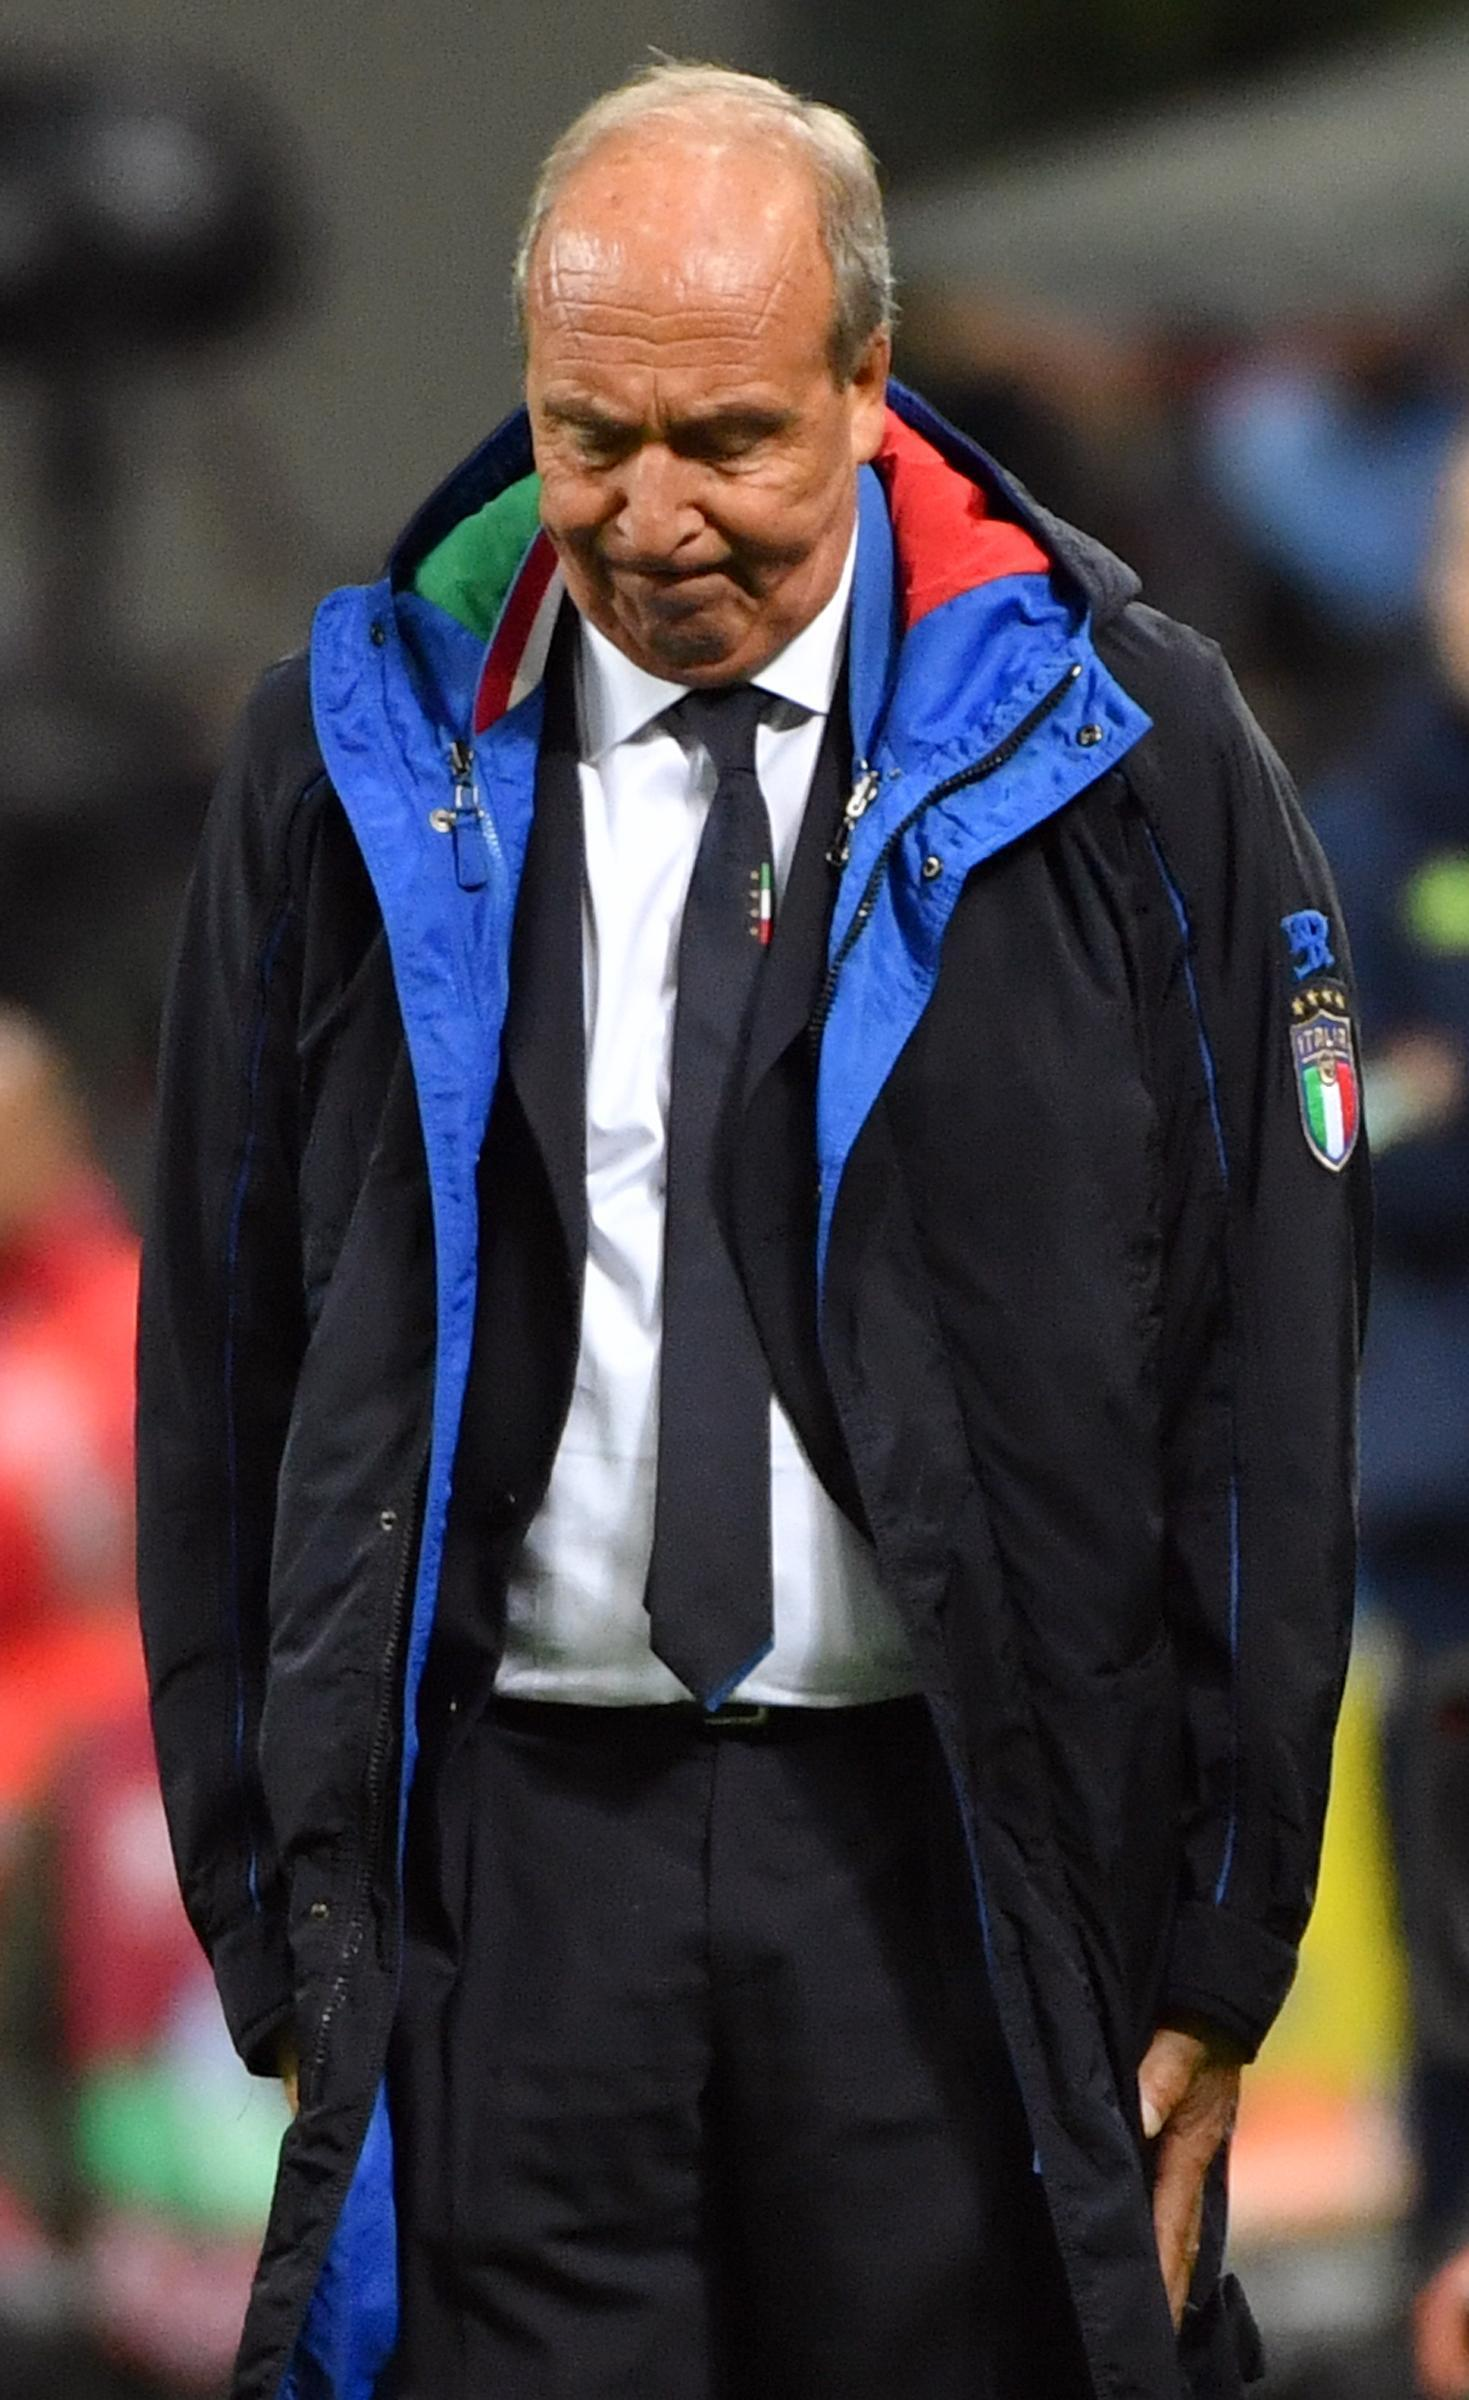 Italy coach Gian Piero Ventura fired after missing World Cup place